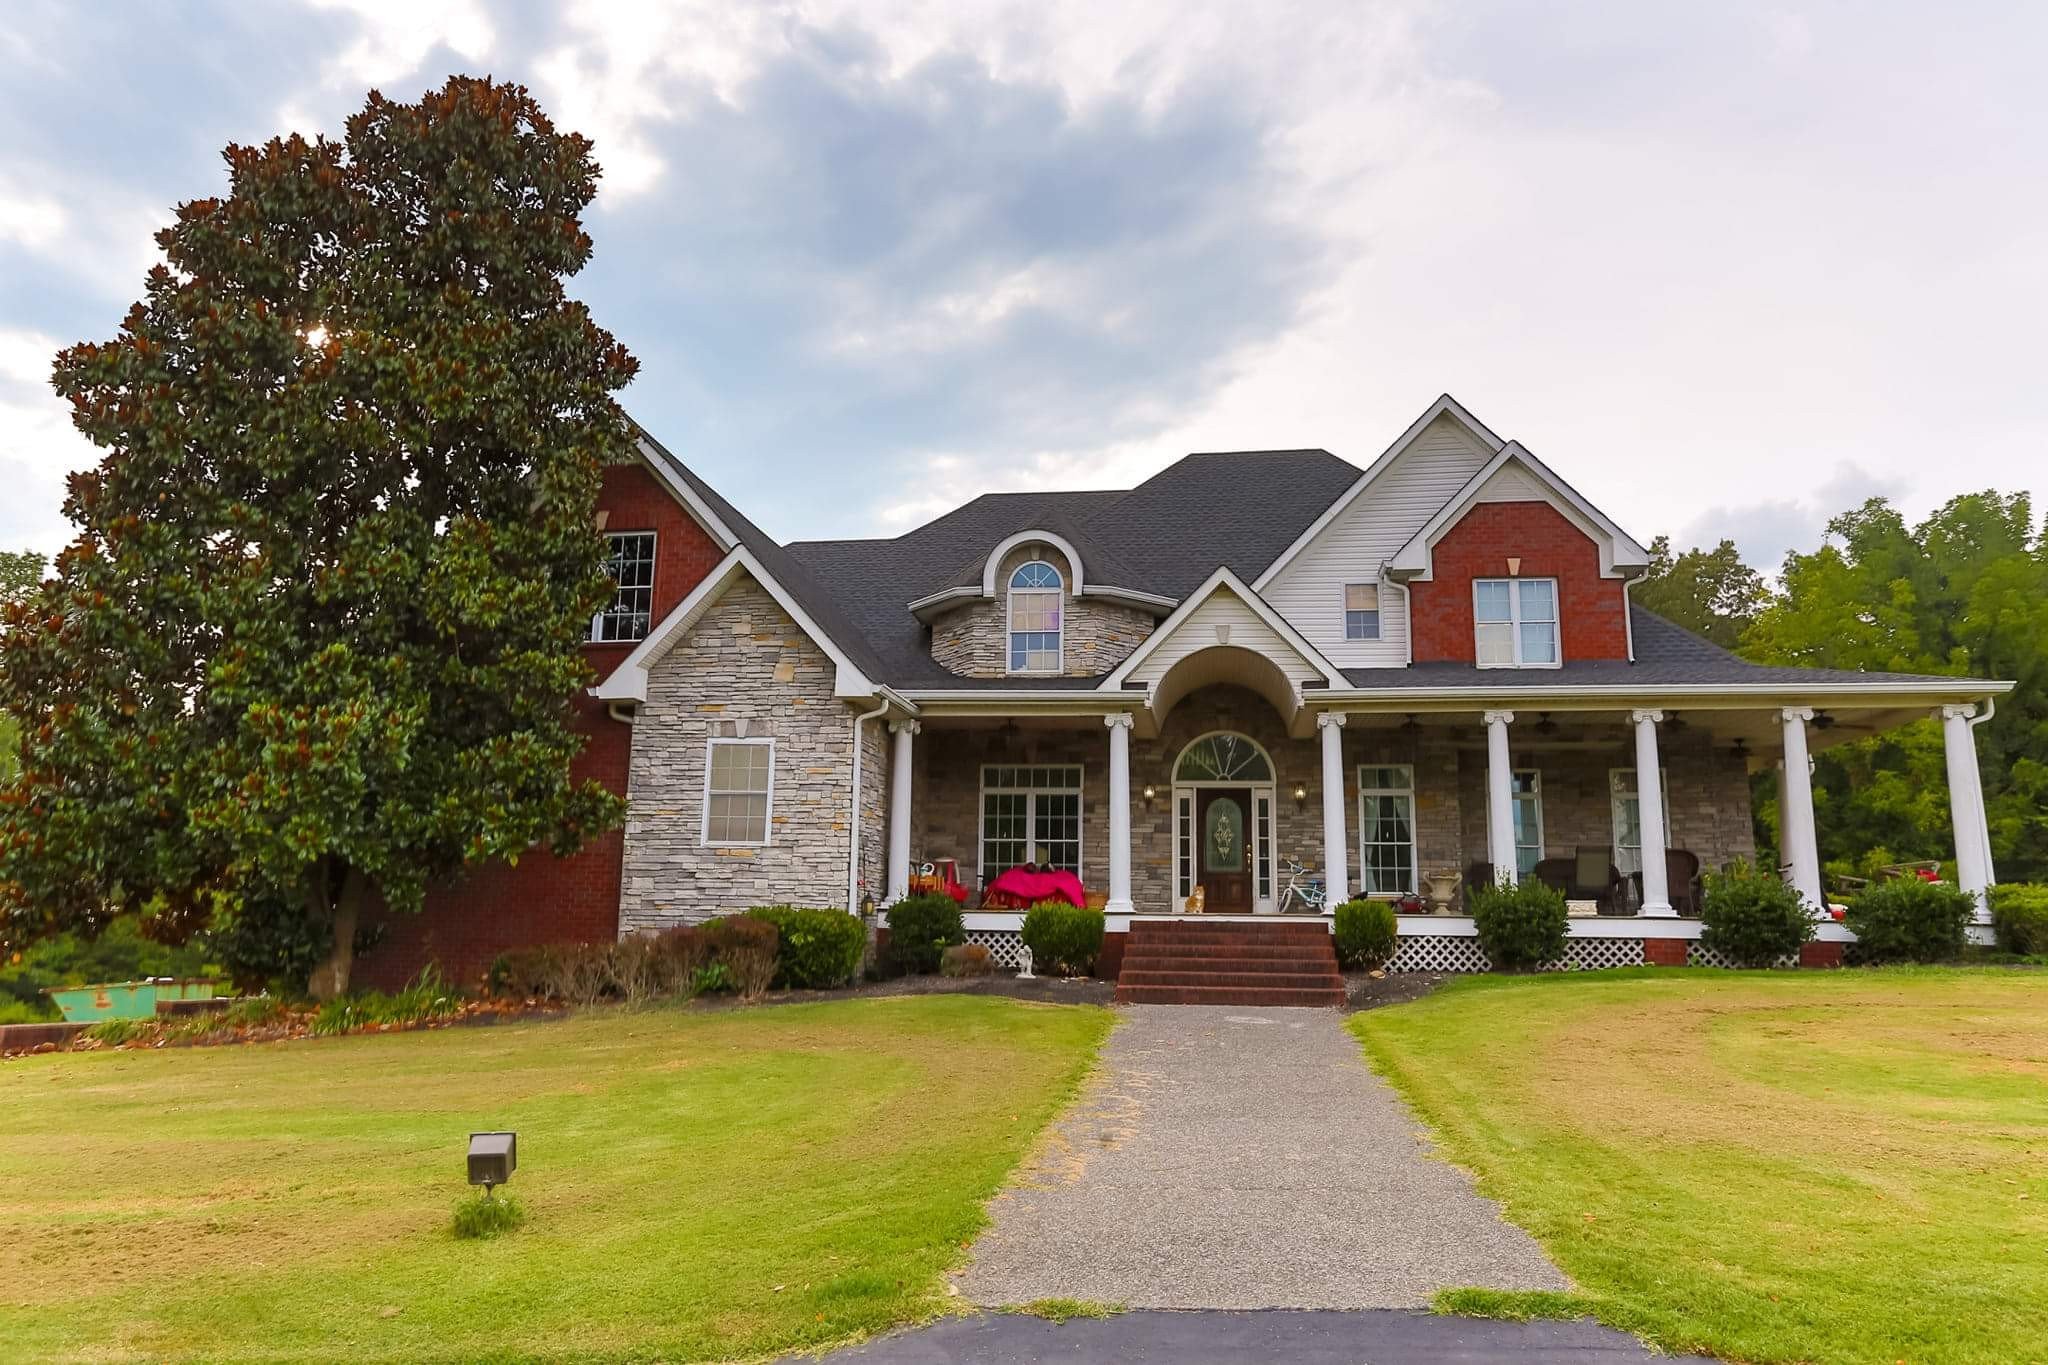 2148 Woodruff Ave Property Photo - Greenbrier, TN real estate listing